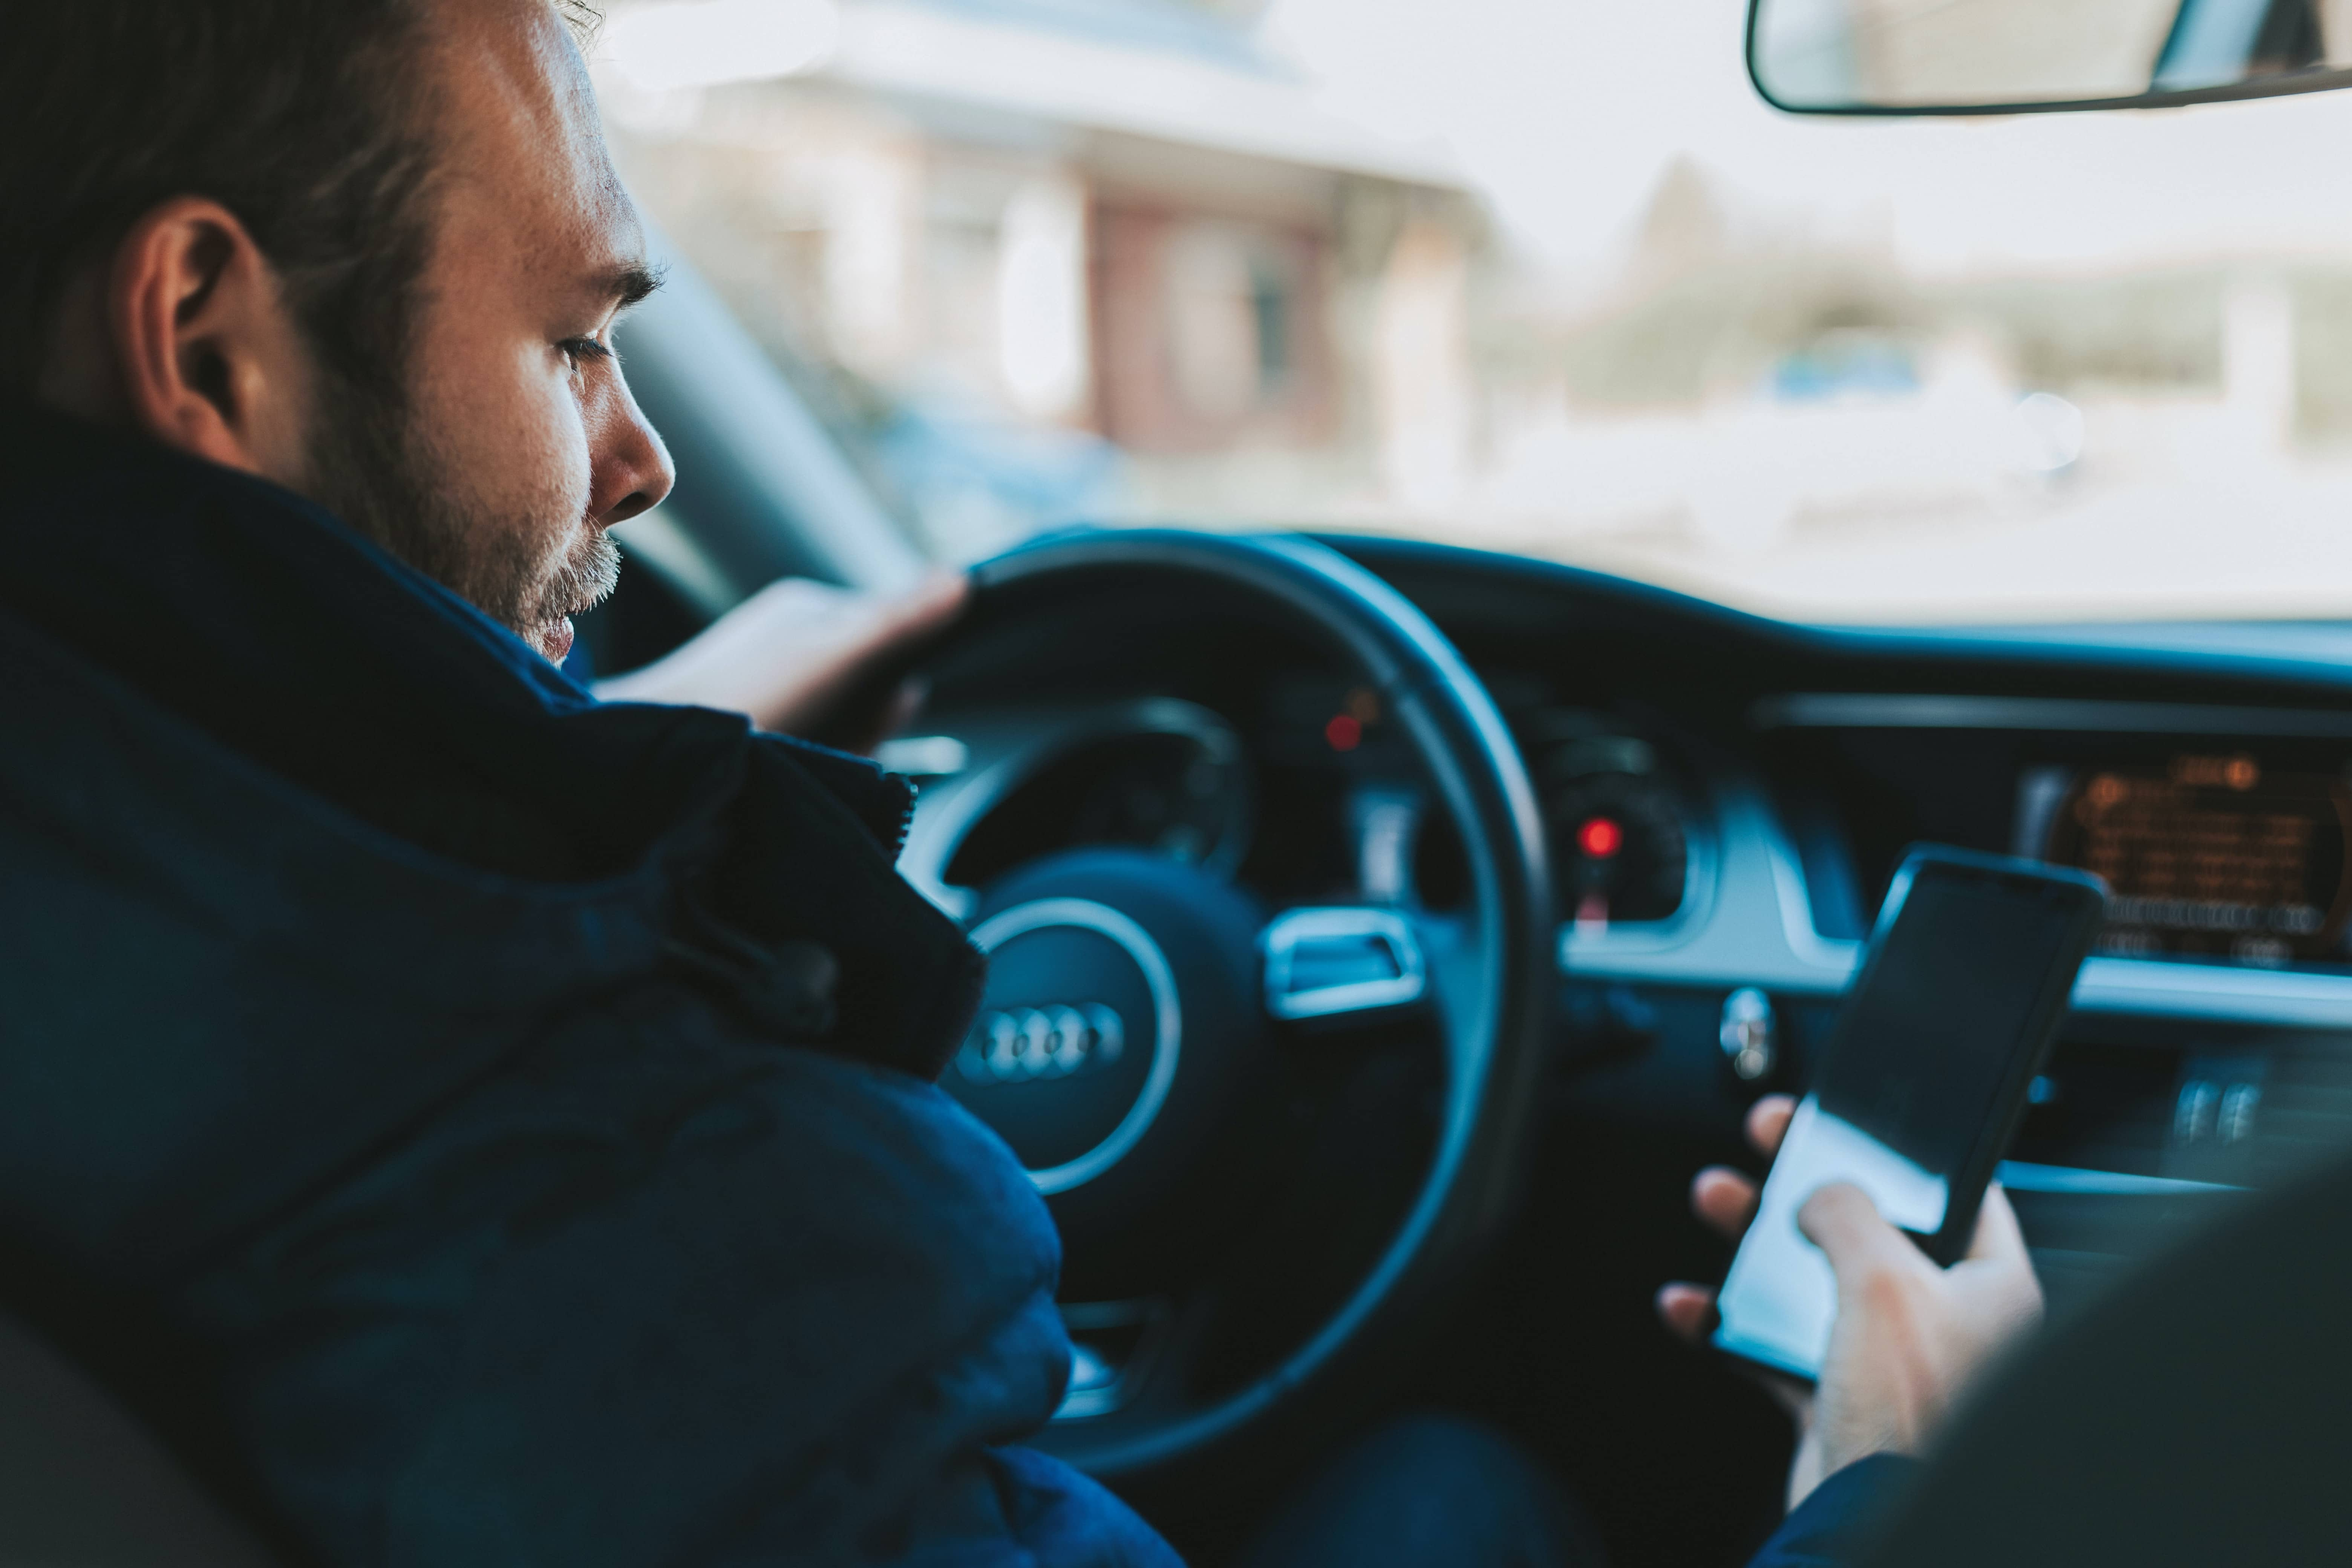 Man driving car on his phone.